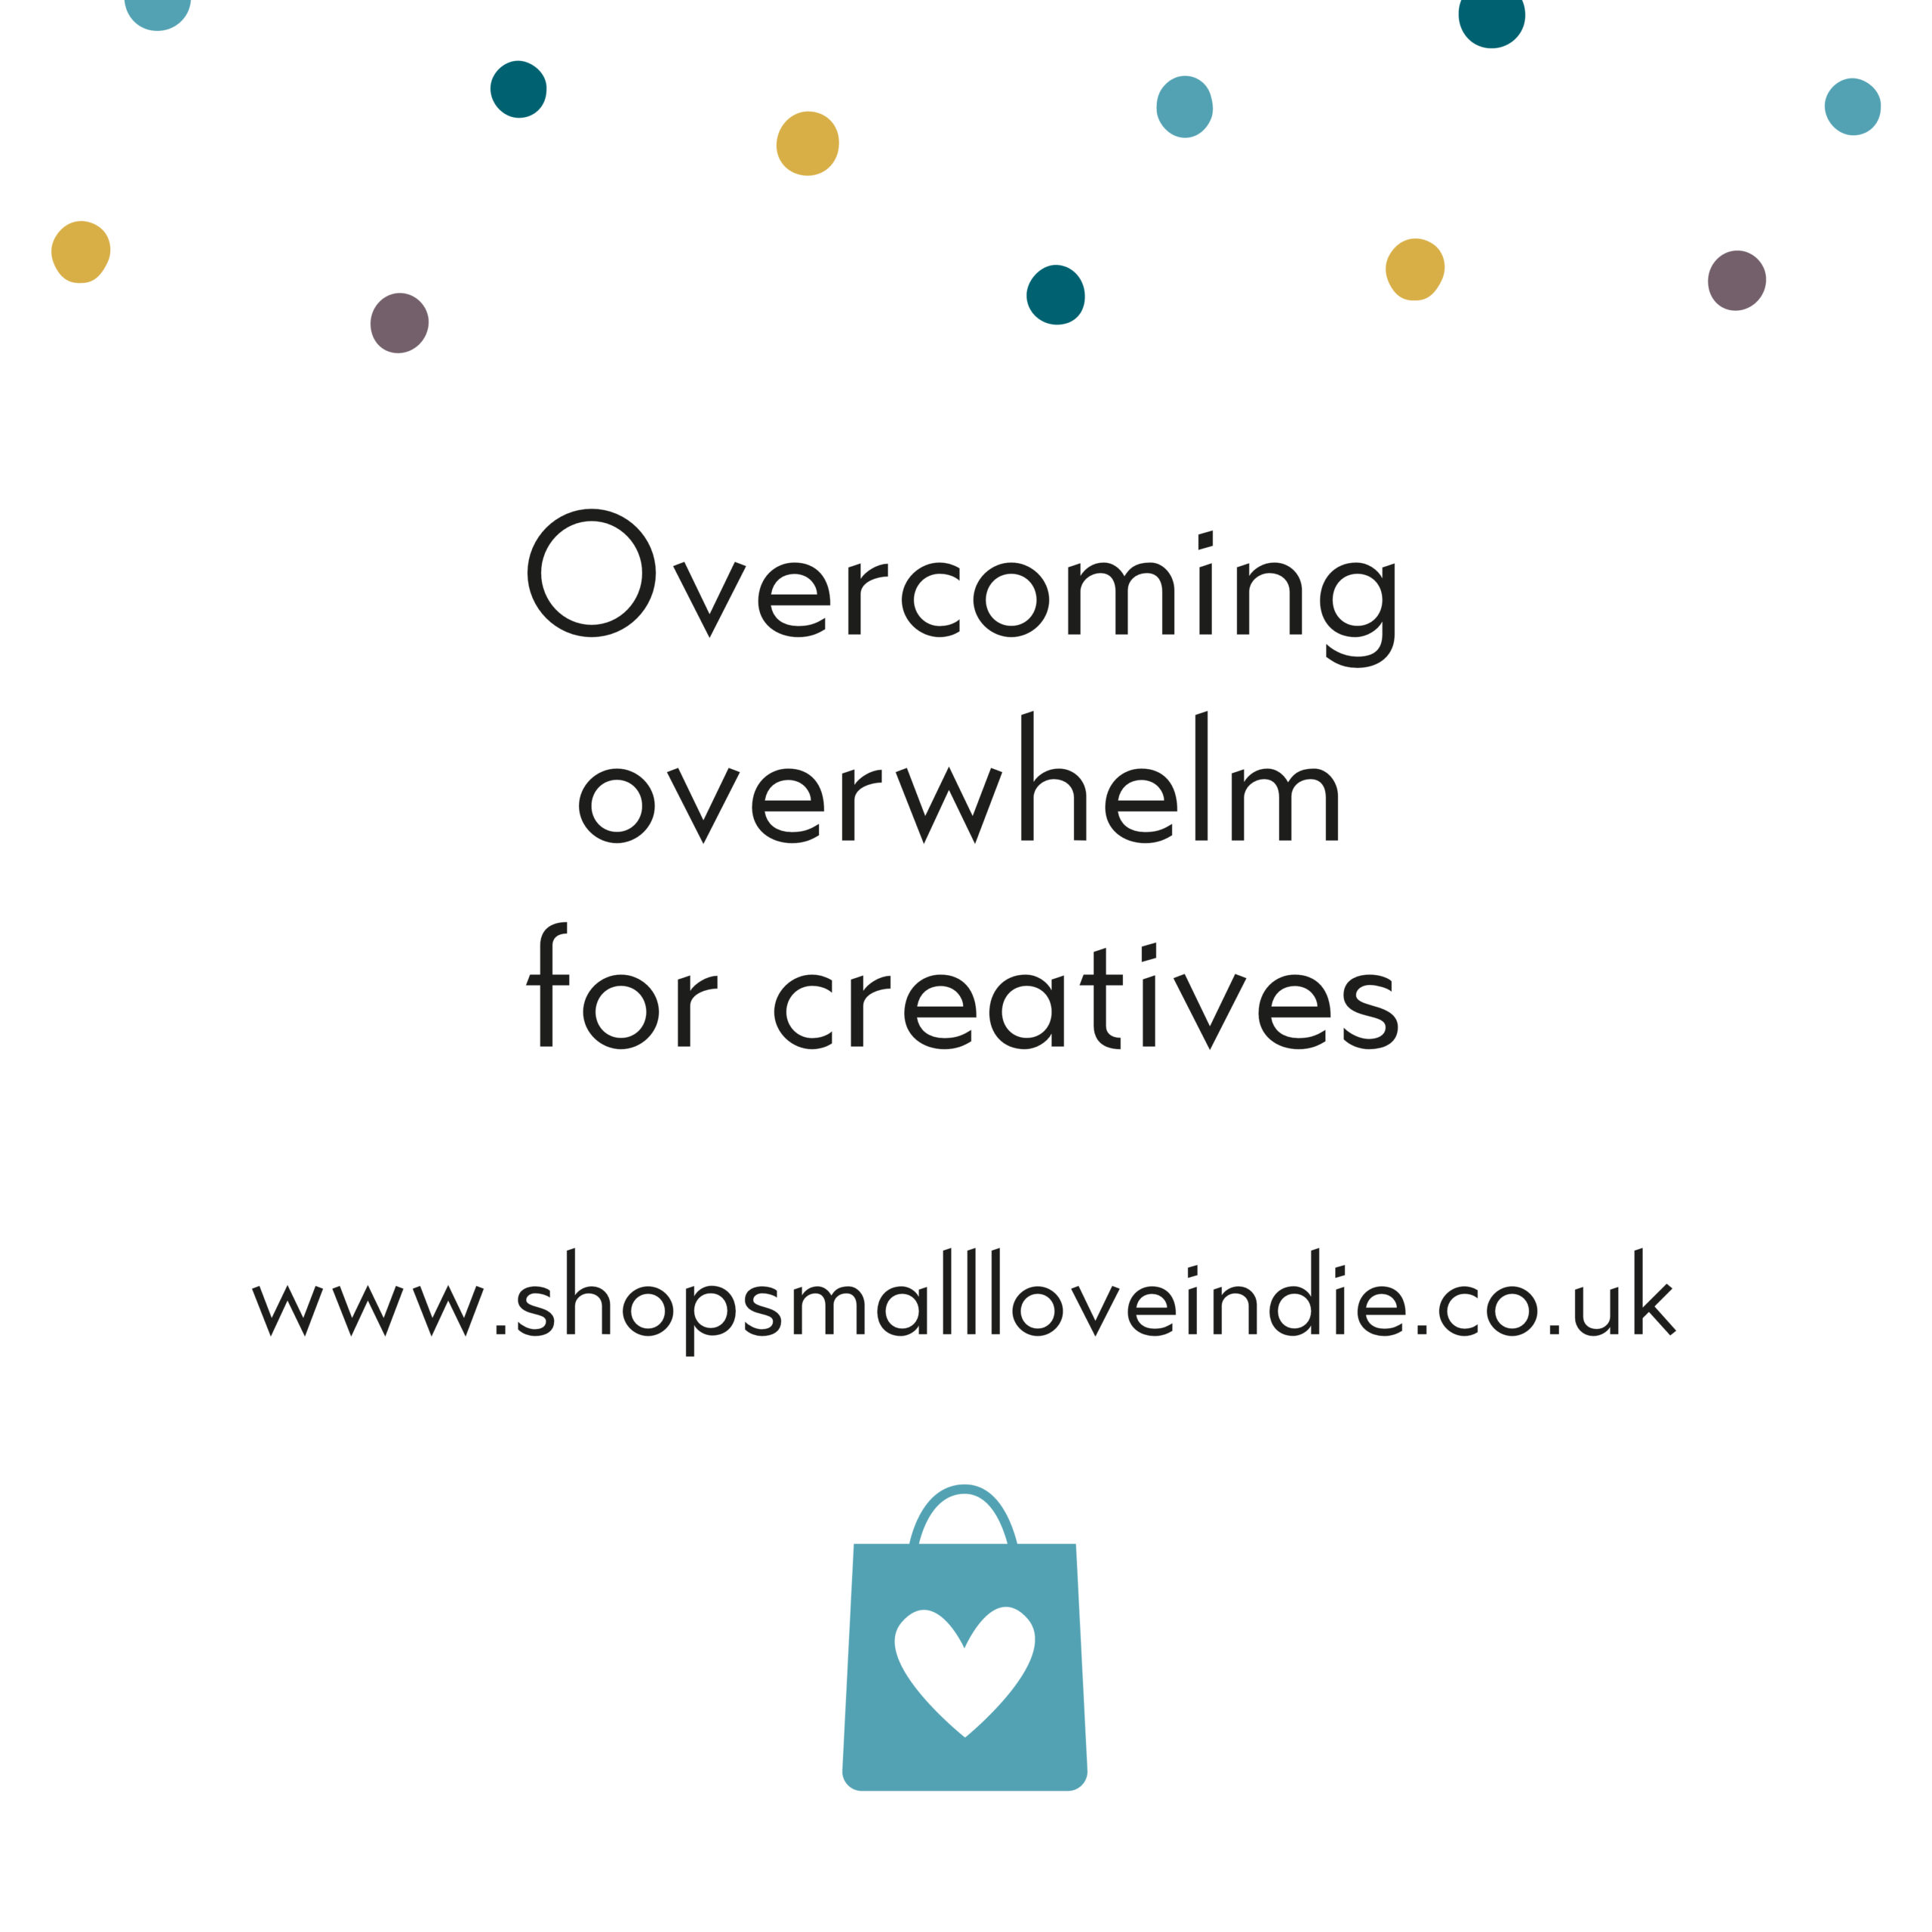 OvercominOverwhelm for creatives